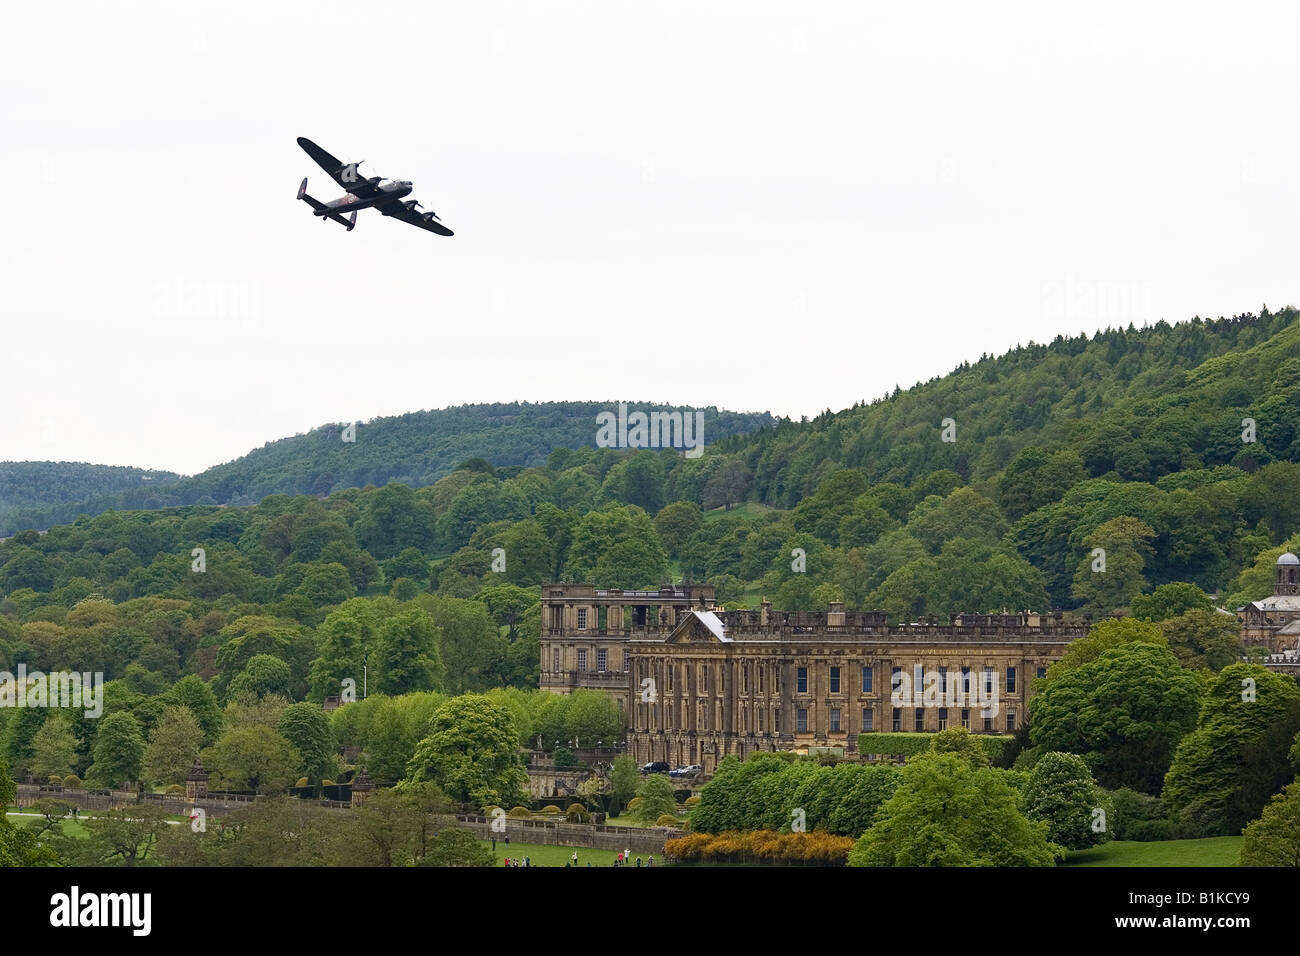 A Lancaster RAF Bomber makes a flypast over Chatsworth House home to the Duke of Devonshire - Stock Image